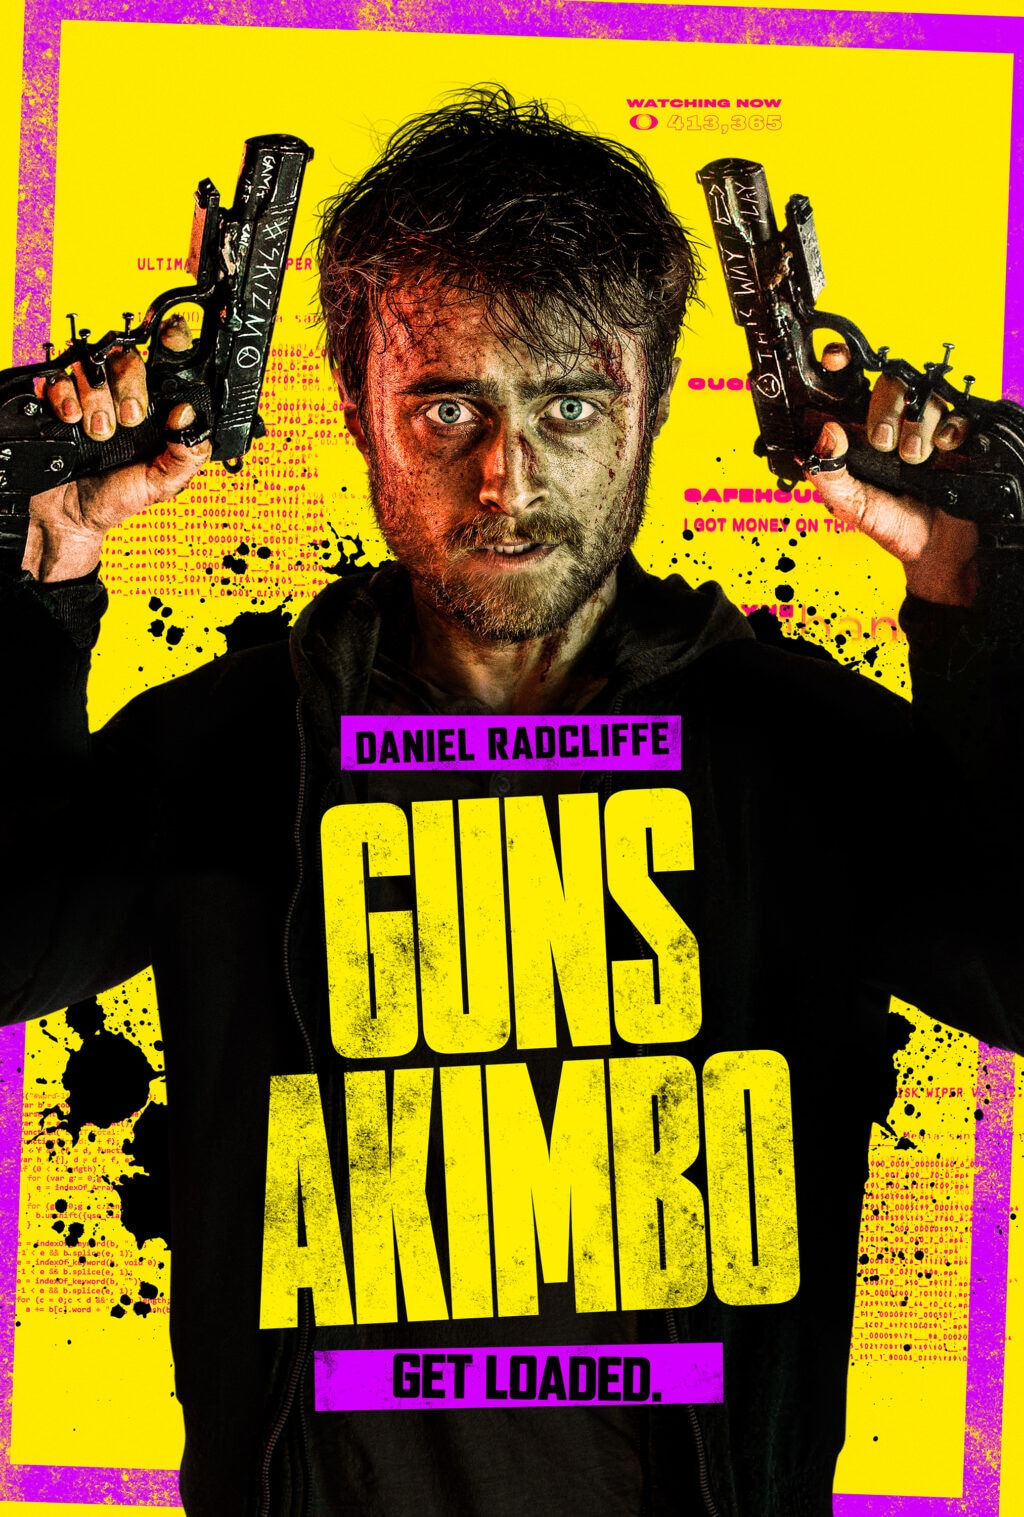 GUNSAKIMBO R04 28 Fin V1 halfsize 1024x1517 - GUNS AKIMBO Rated R For Strong Bloody Violence Throughout & More